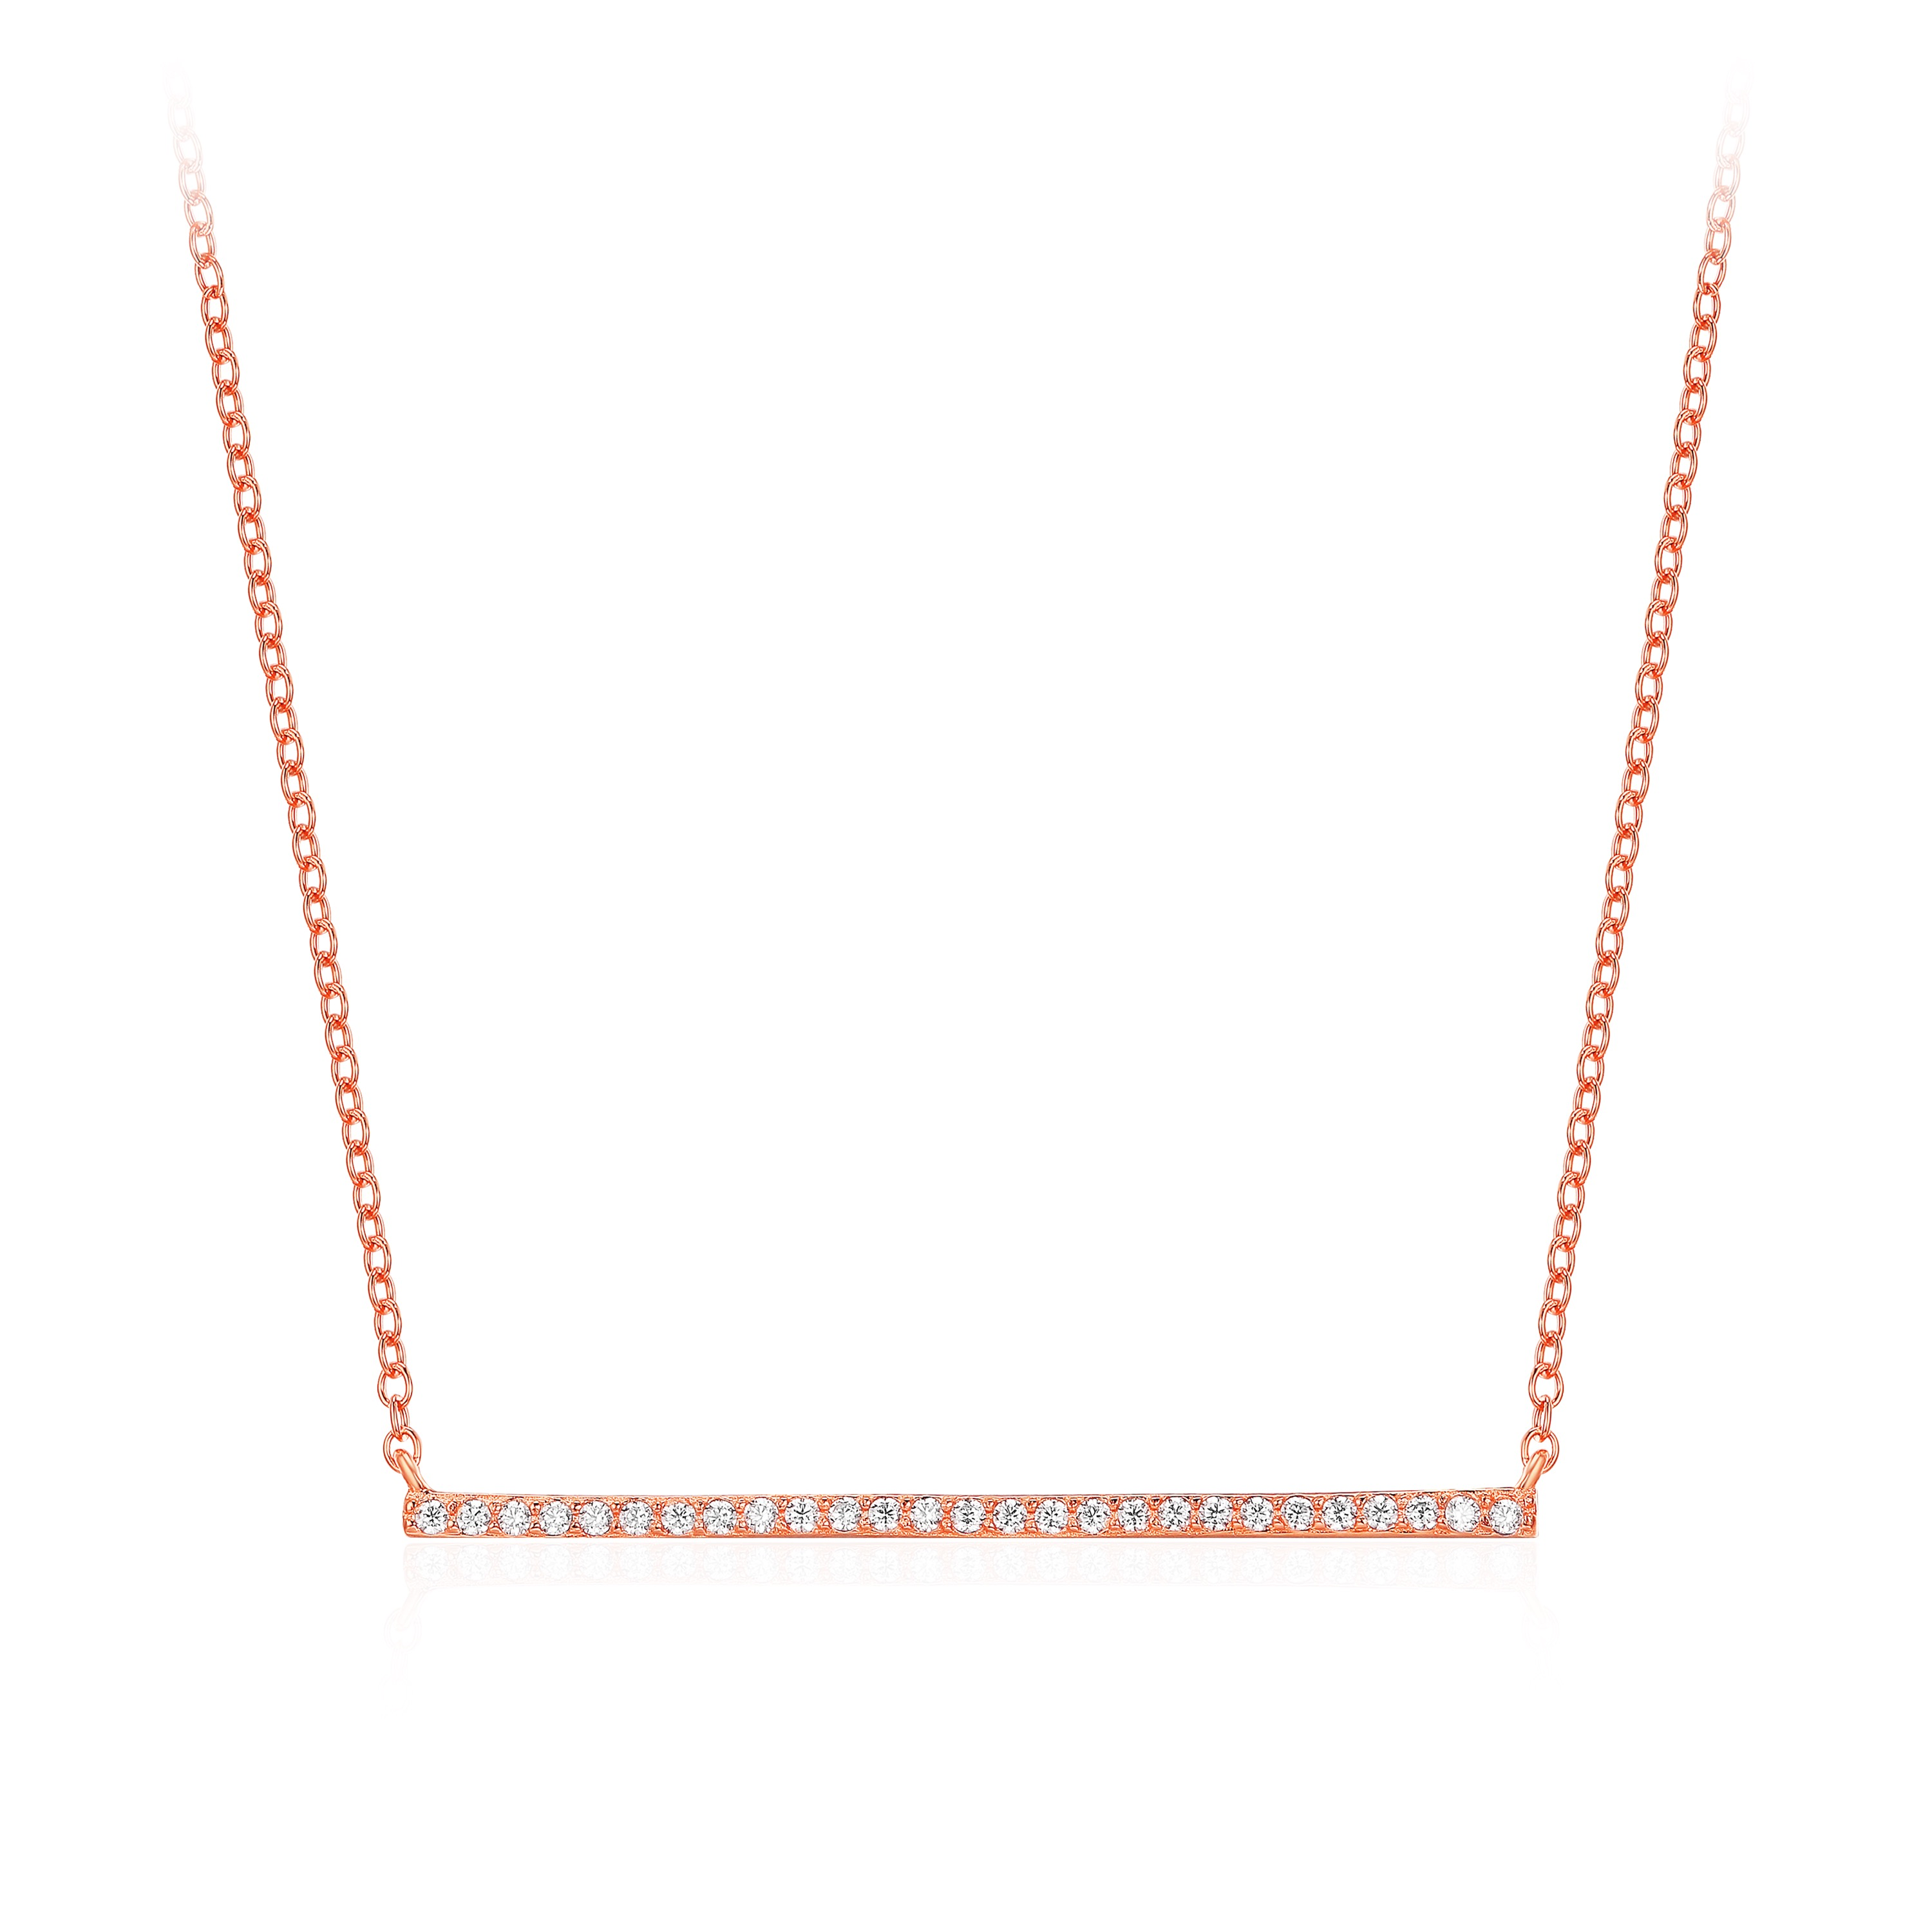 f17ed4307d8f4 Bar CZ Pave Necklace in Sterling Silver Rose Gold Plated